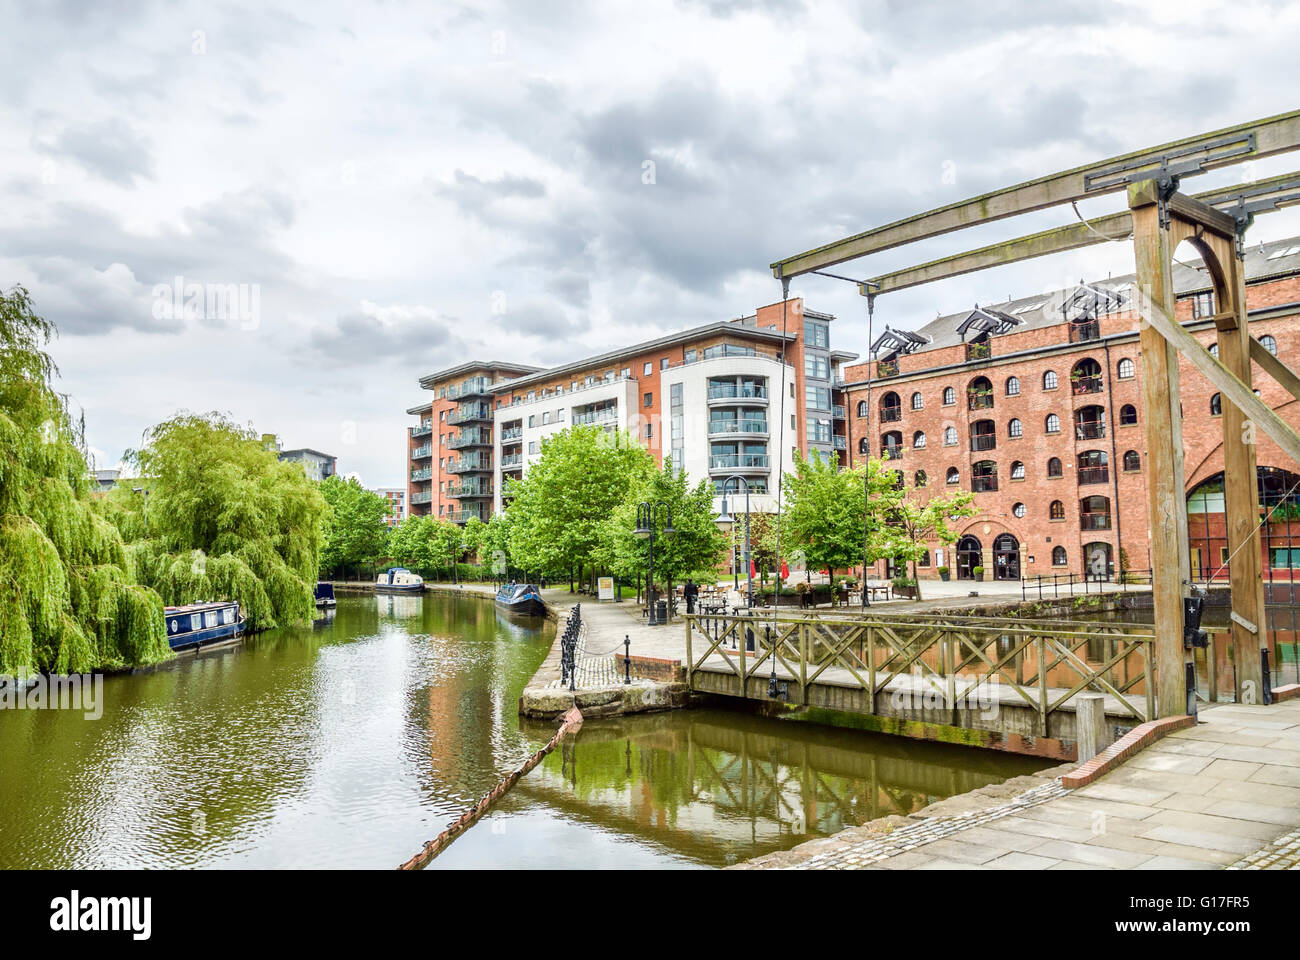 Housing developments Castlefield area in the inner city area of Manchester in North West England. - Stock Image